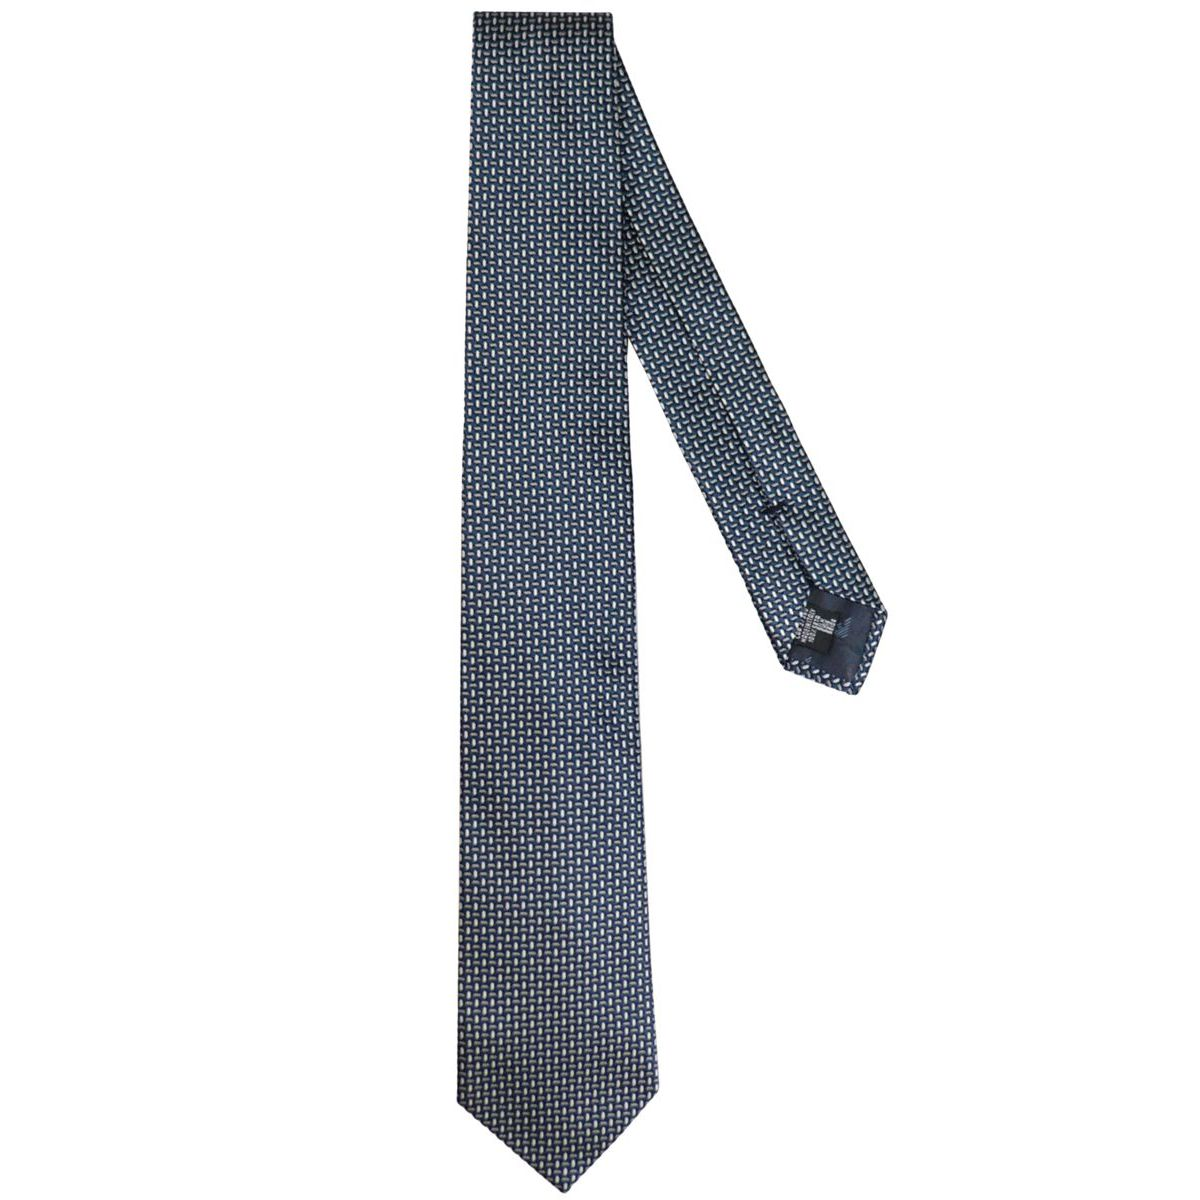 Woven micro patterned silk tie Blackboard Emporio Armani